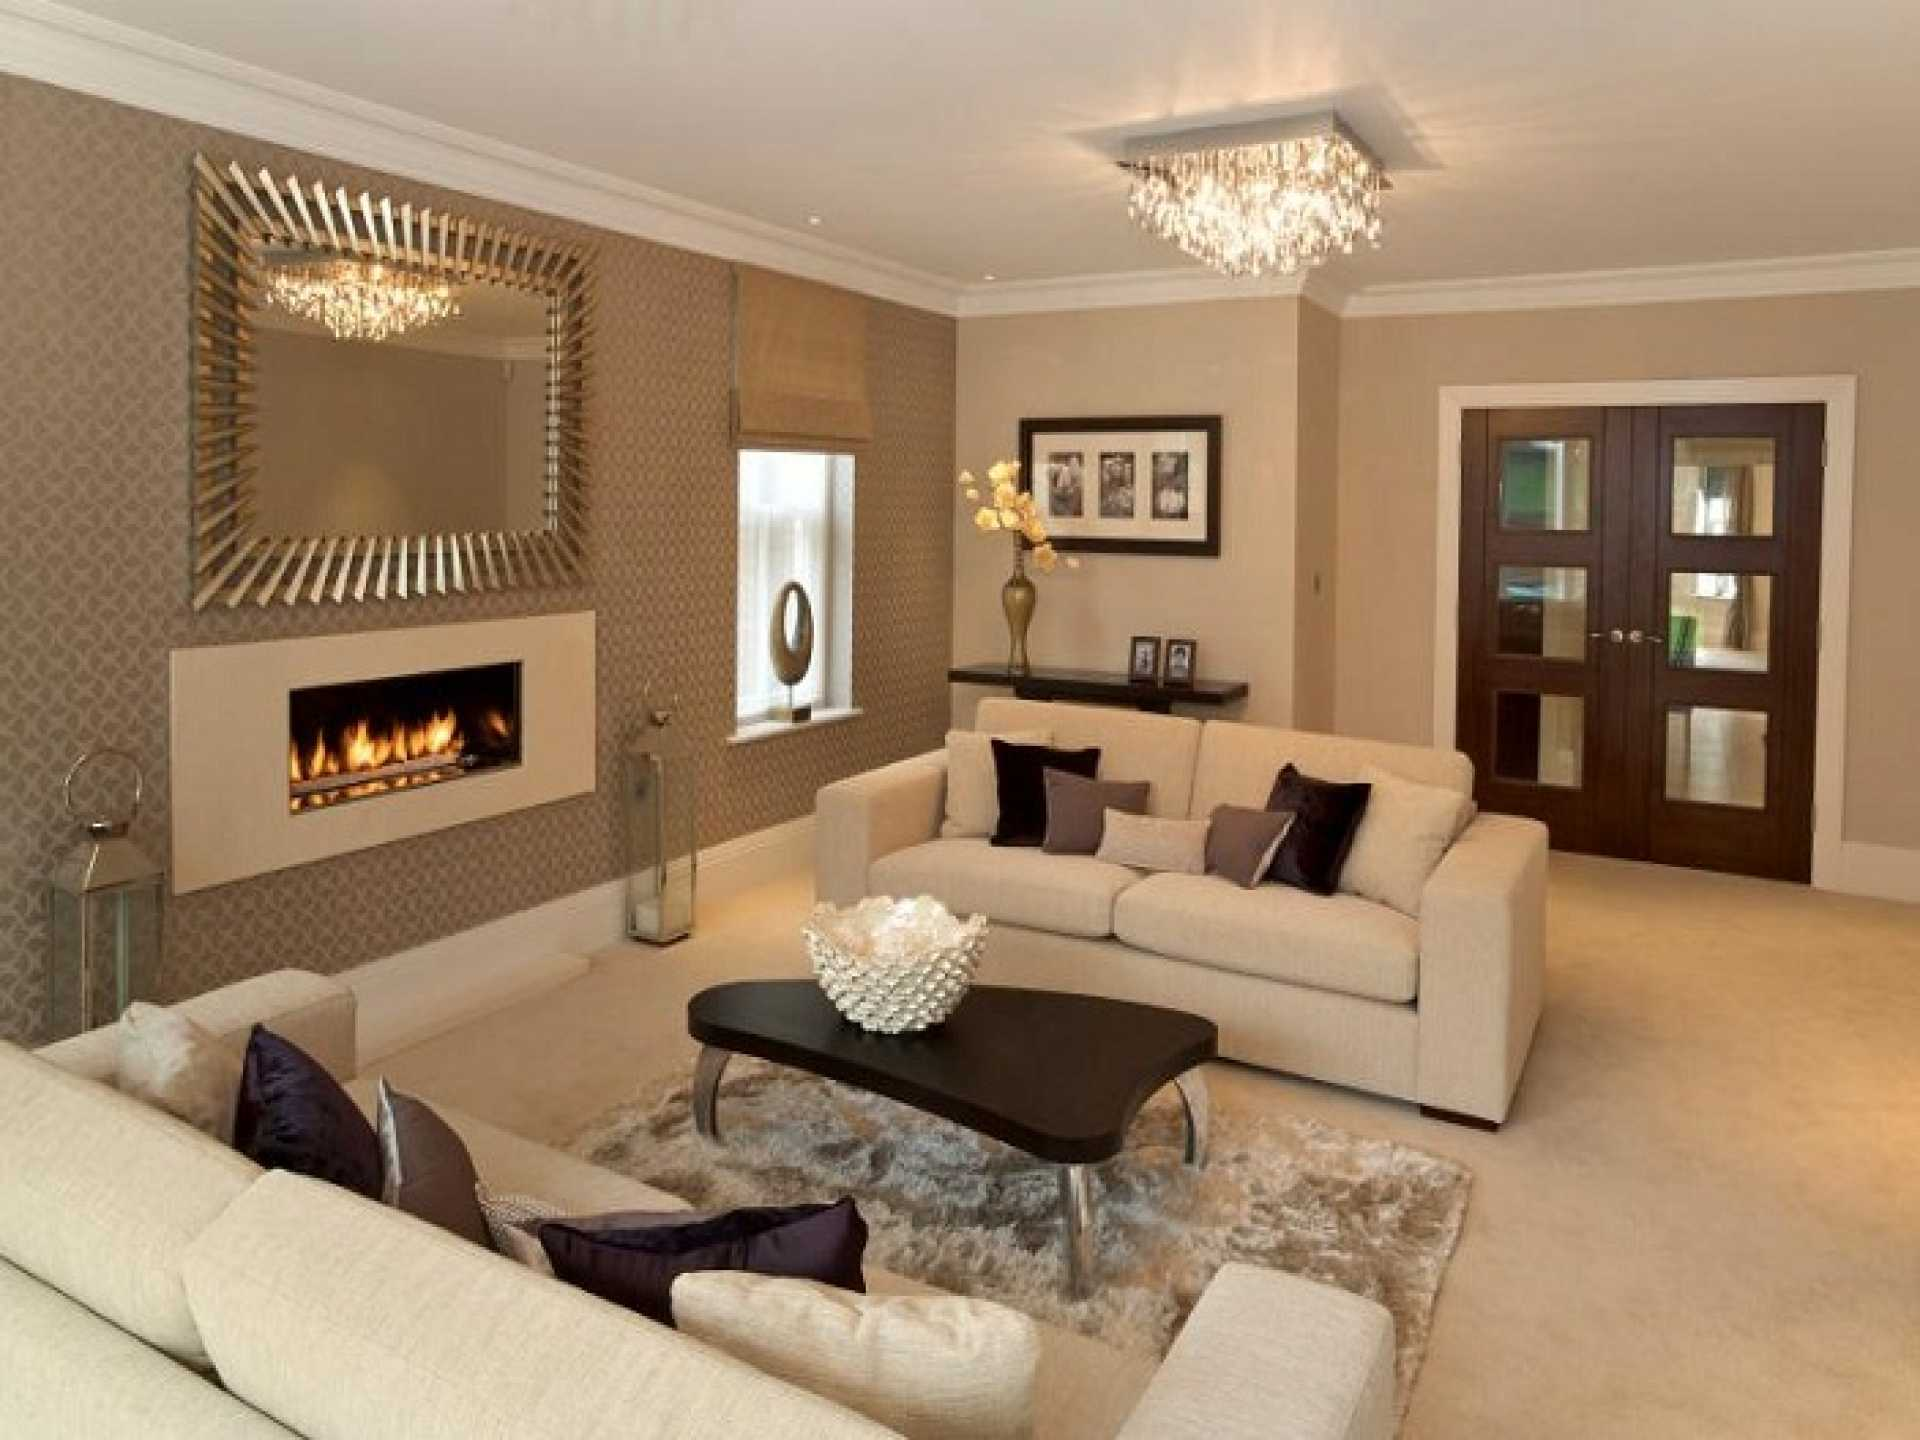 Exquisite Living Room Color Ideas Of Paint For With Brown Furniture Pictures Acnn Decor